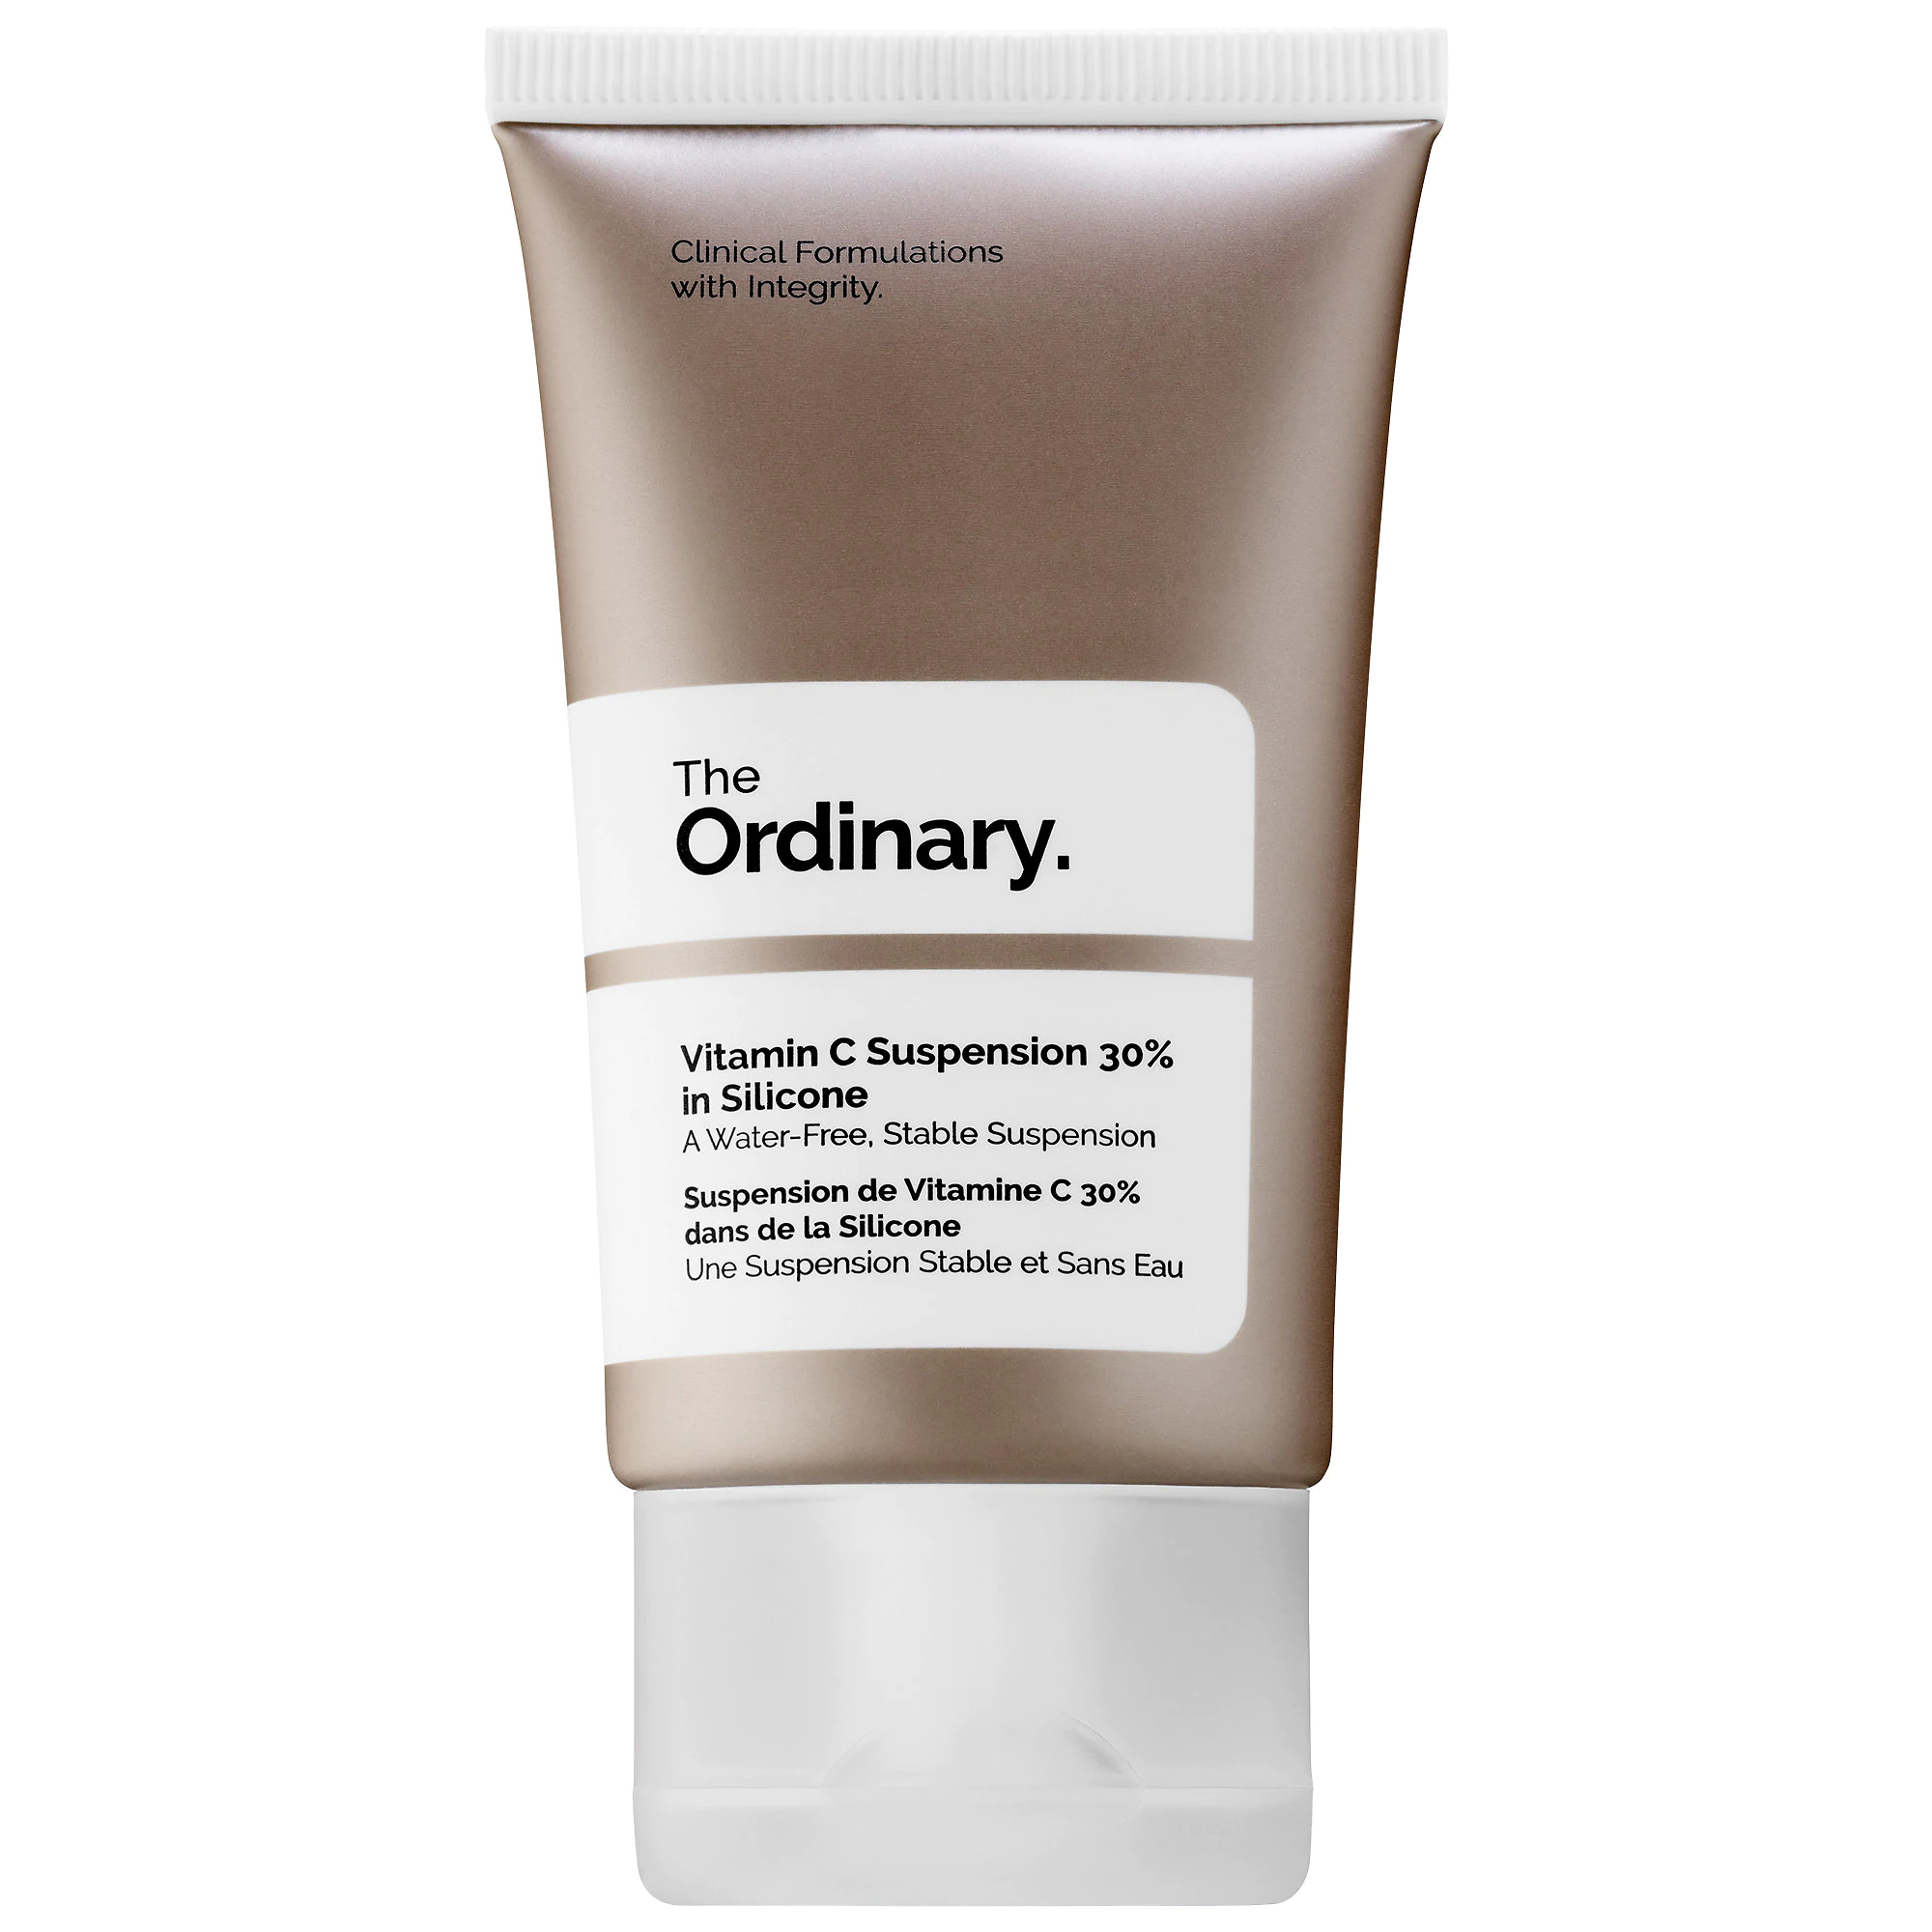 The Ordinary-Vitamin C Suspension 30% In Silicone